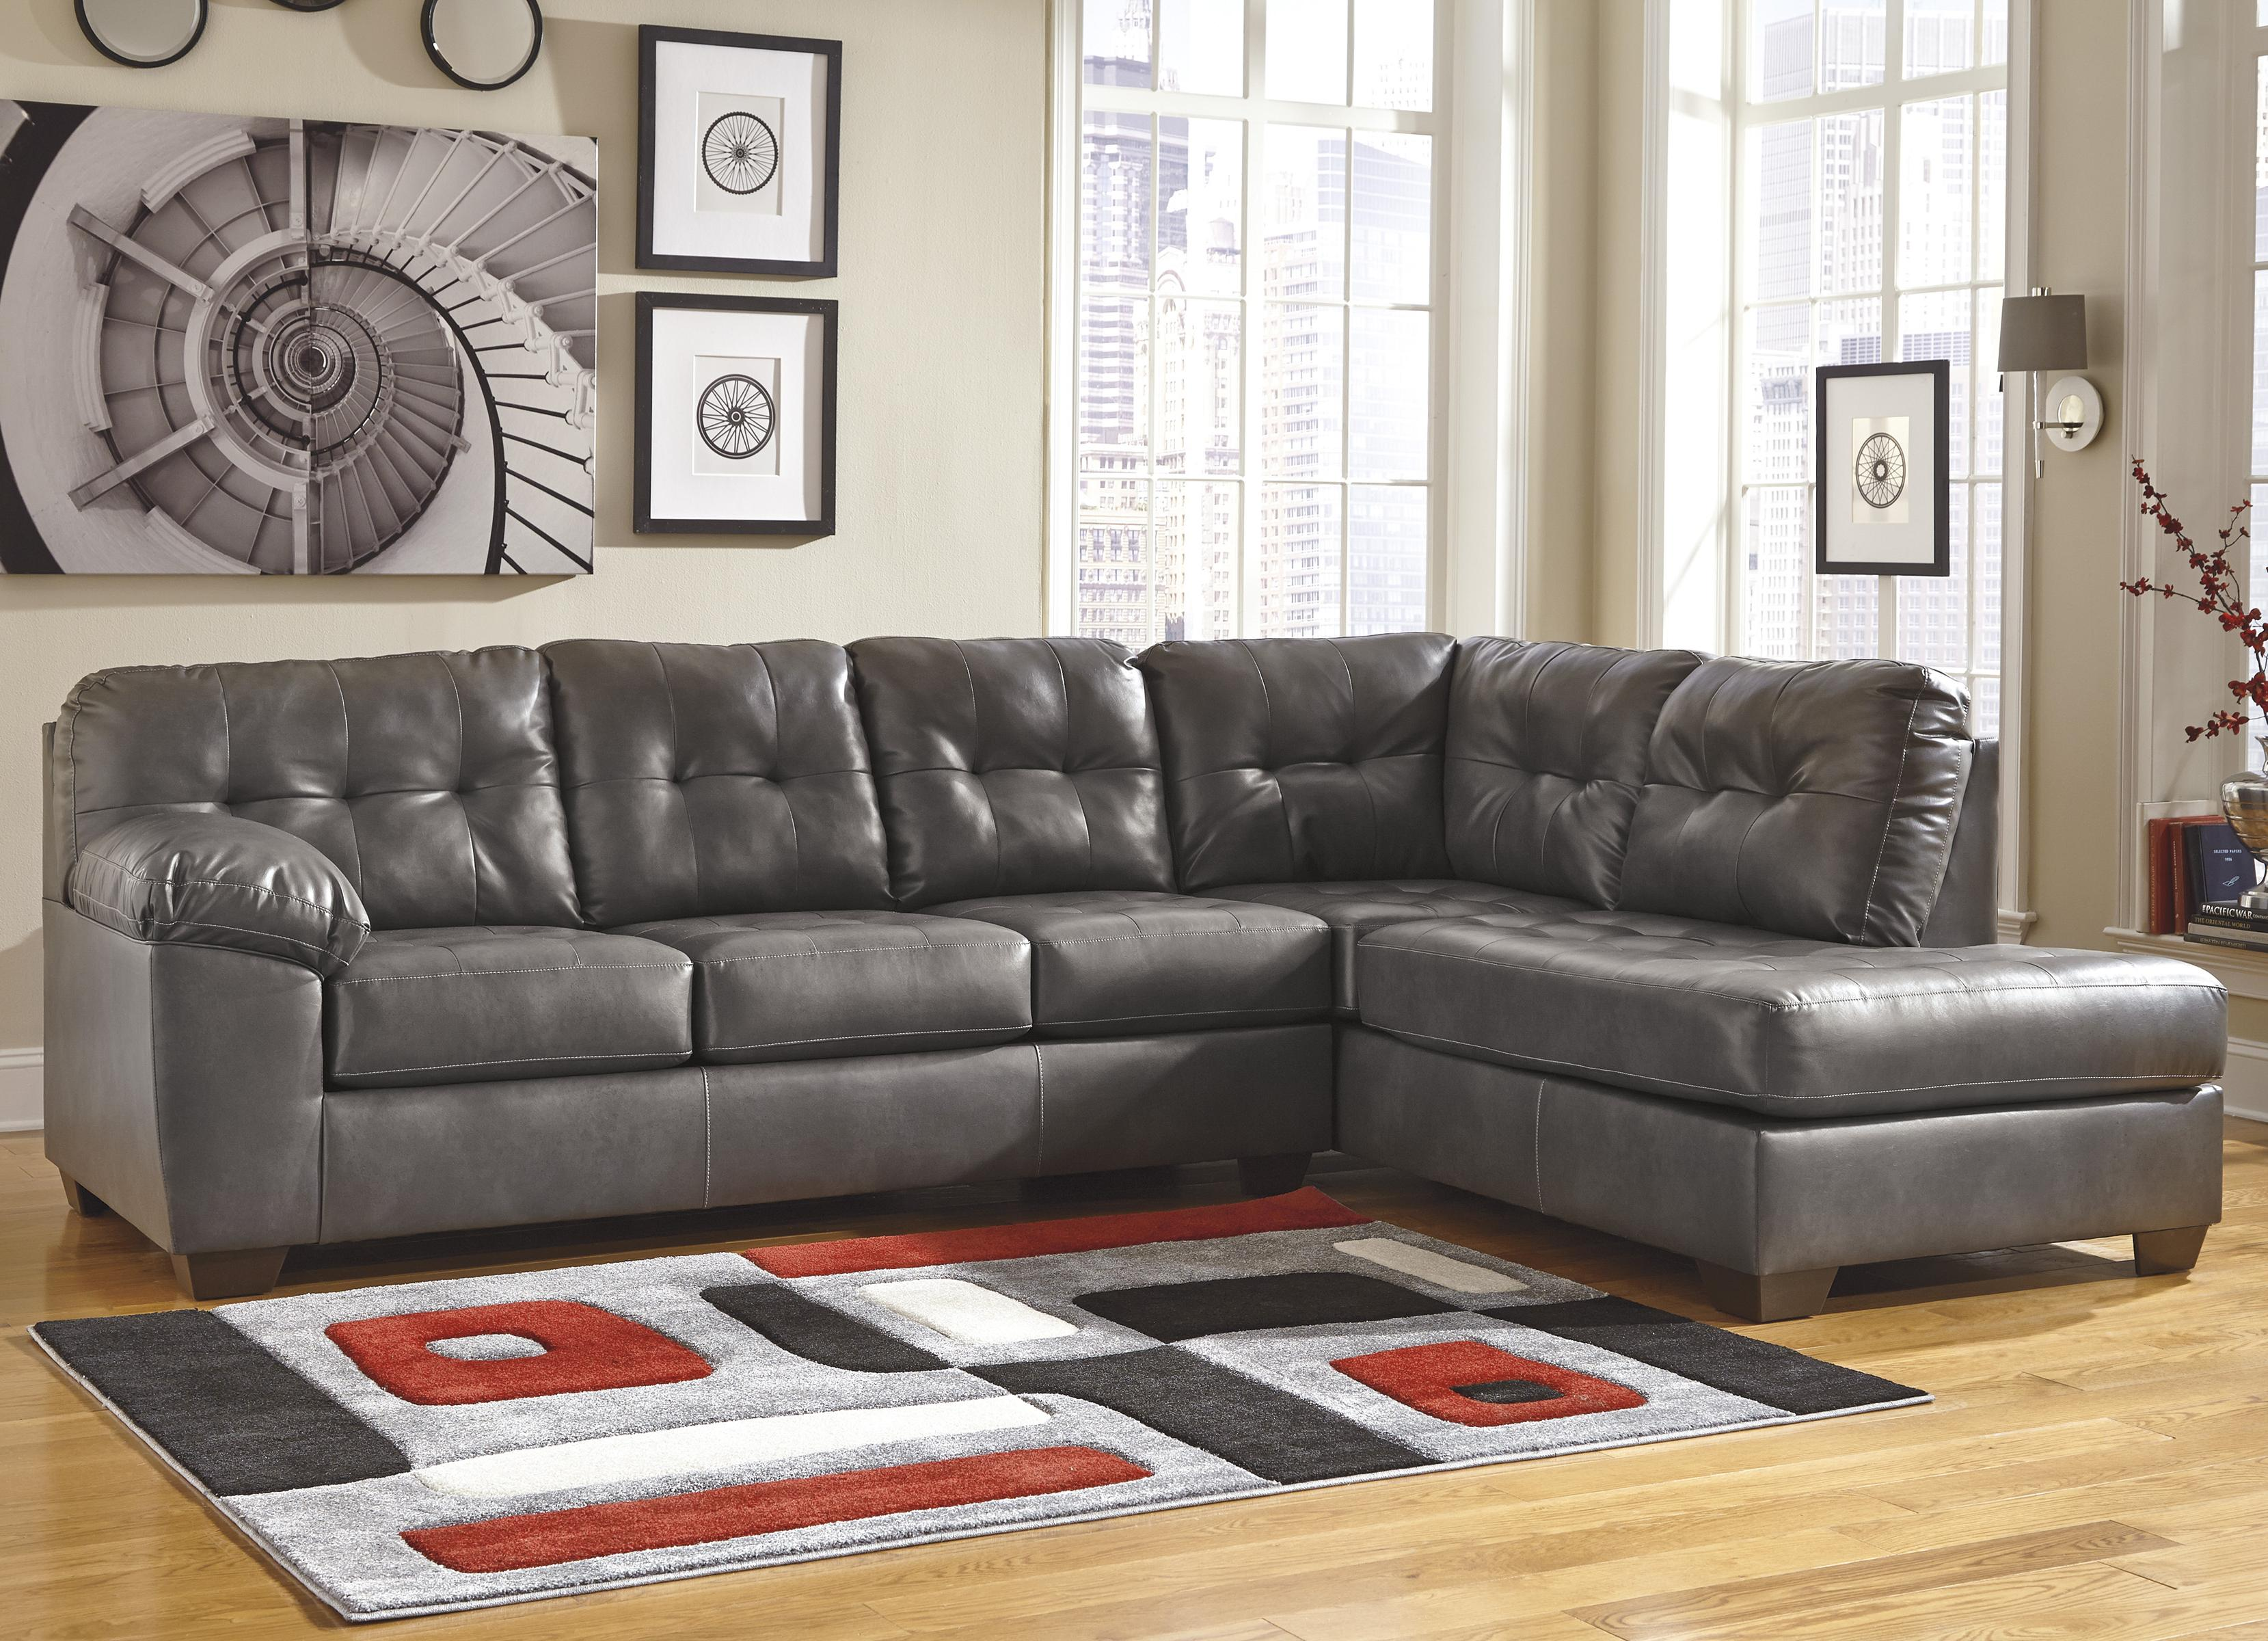 Faux Leather Sectional w/ Right Chaise u0026 Tufting : faux leather sectionals - Sectionals, Sofas & Couches